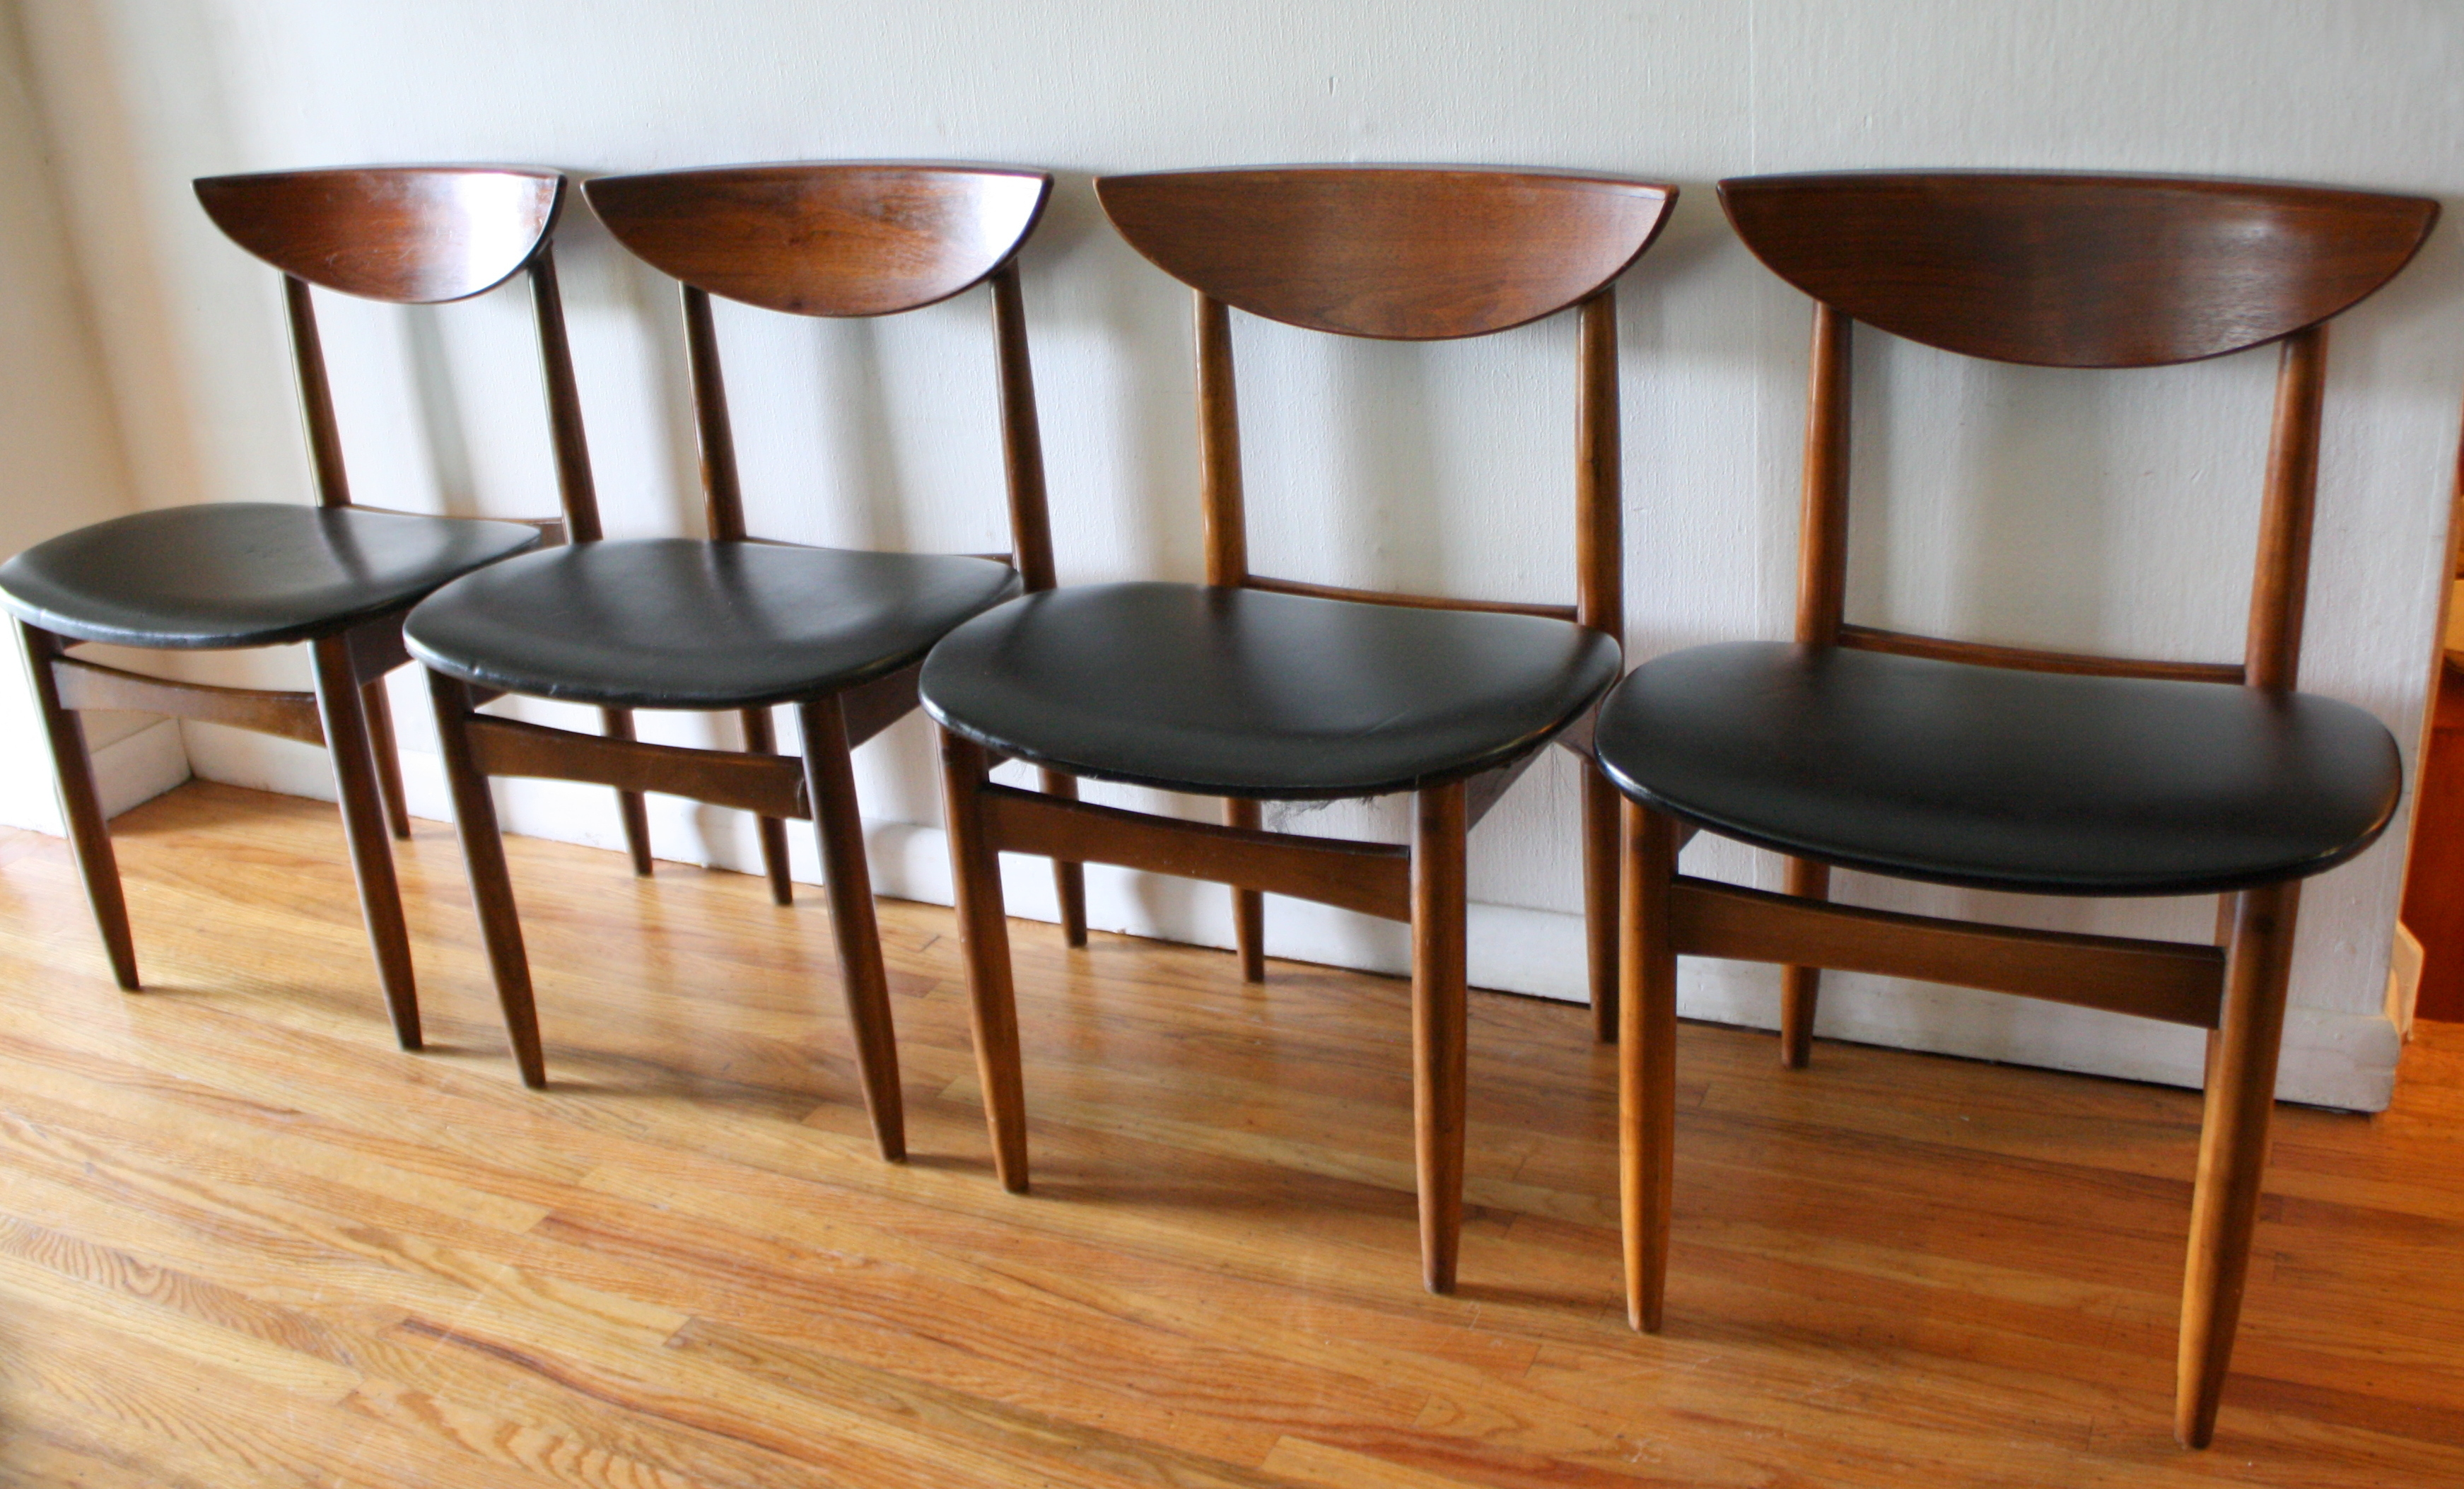 mid century modern dining chair set from the broyhill brasilia collection mid century kitchen chairs